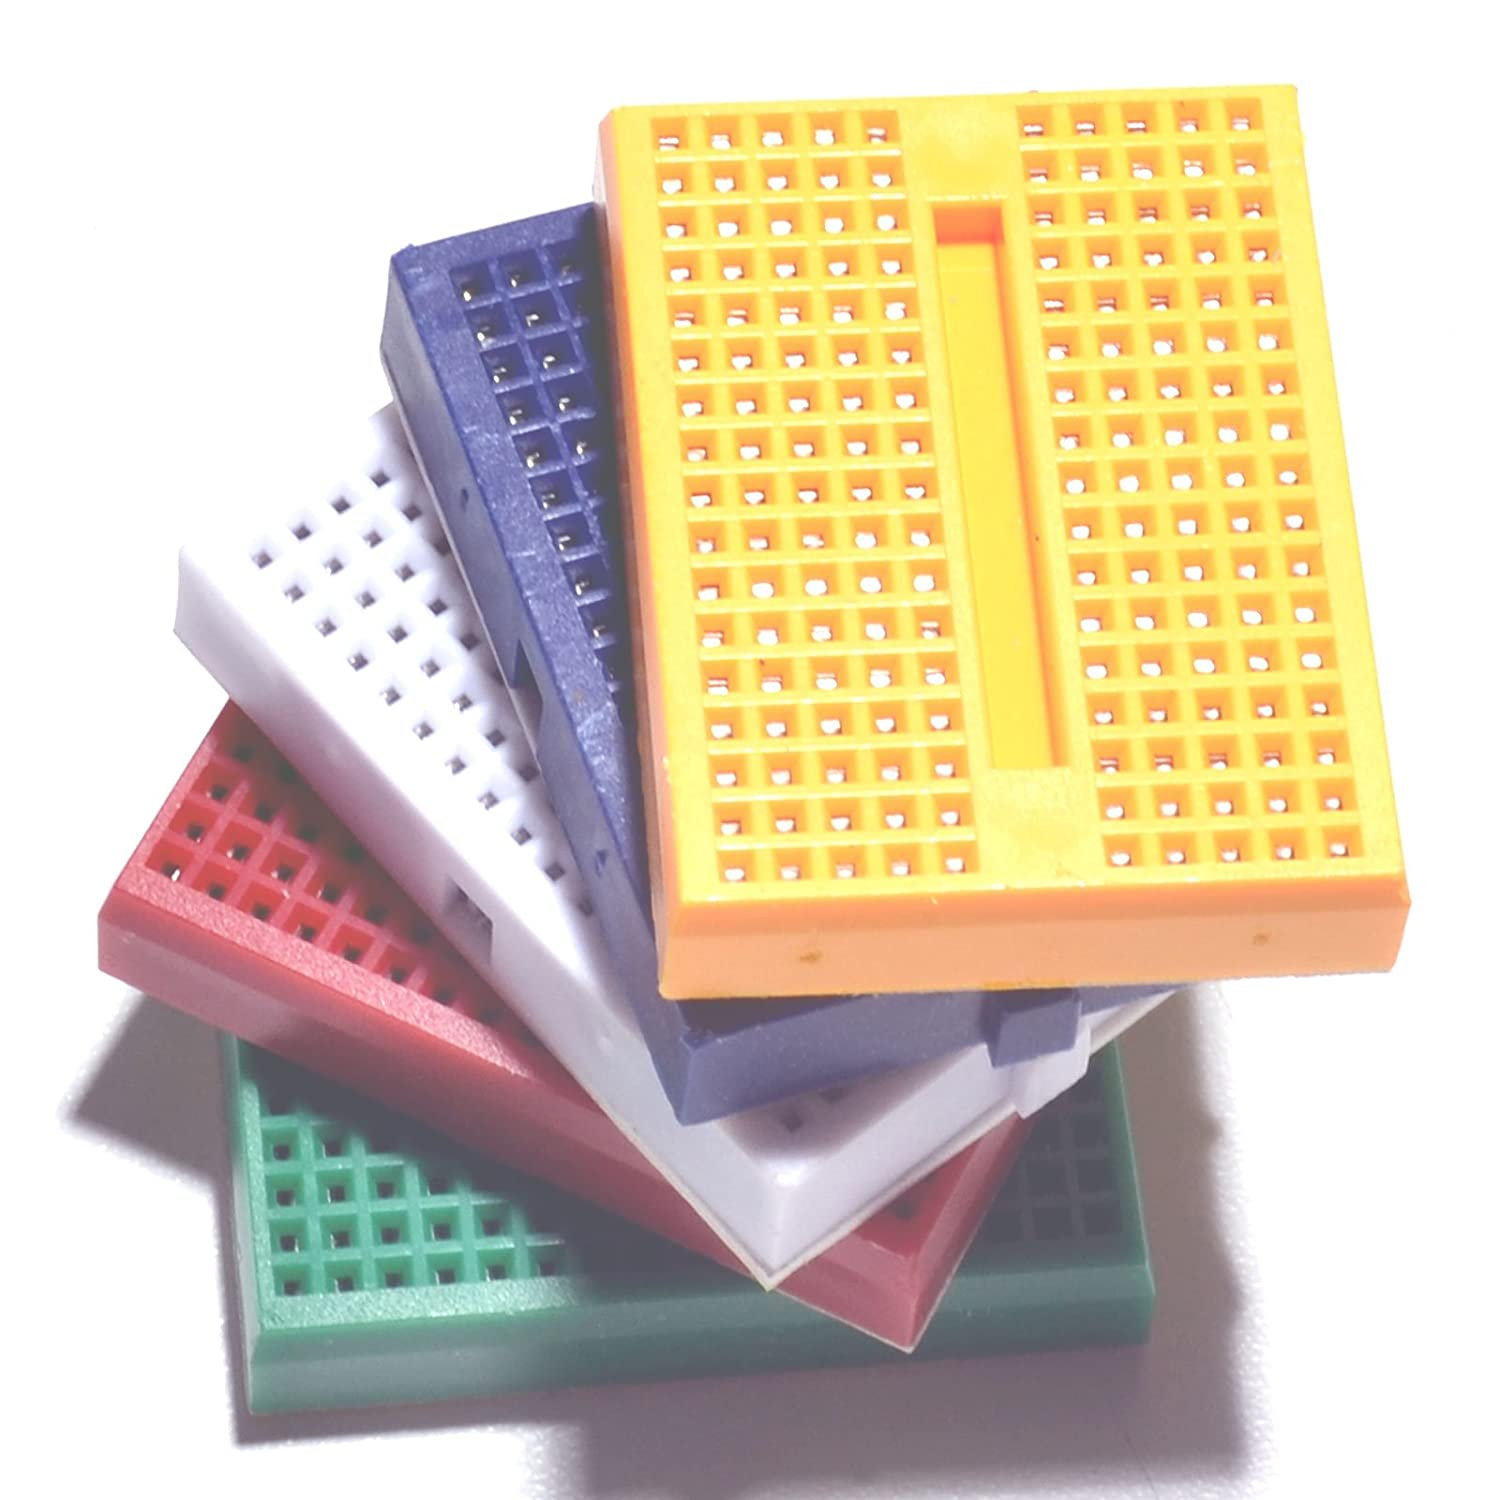 HiLetgo 5pcs SYB-170 Mini Breadboard Colorful Breadboard Small Plates [Office Product] 3-01-0633